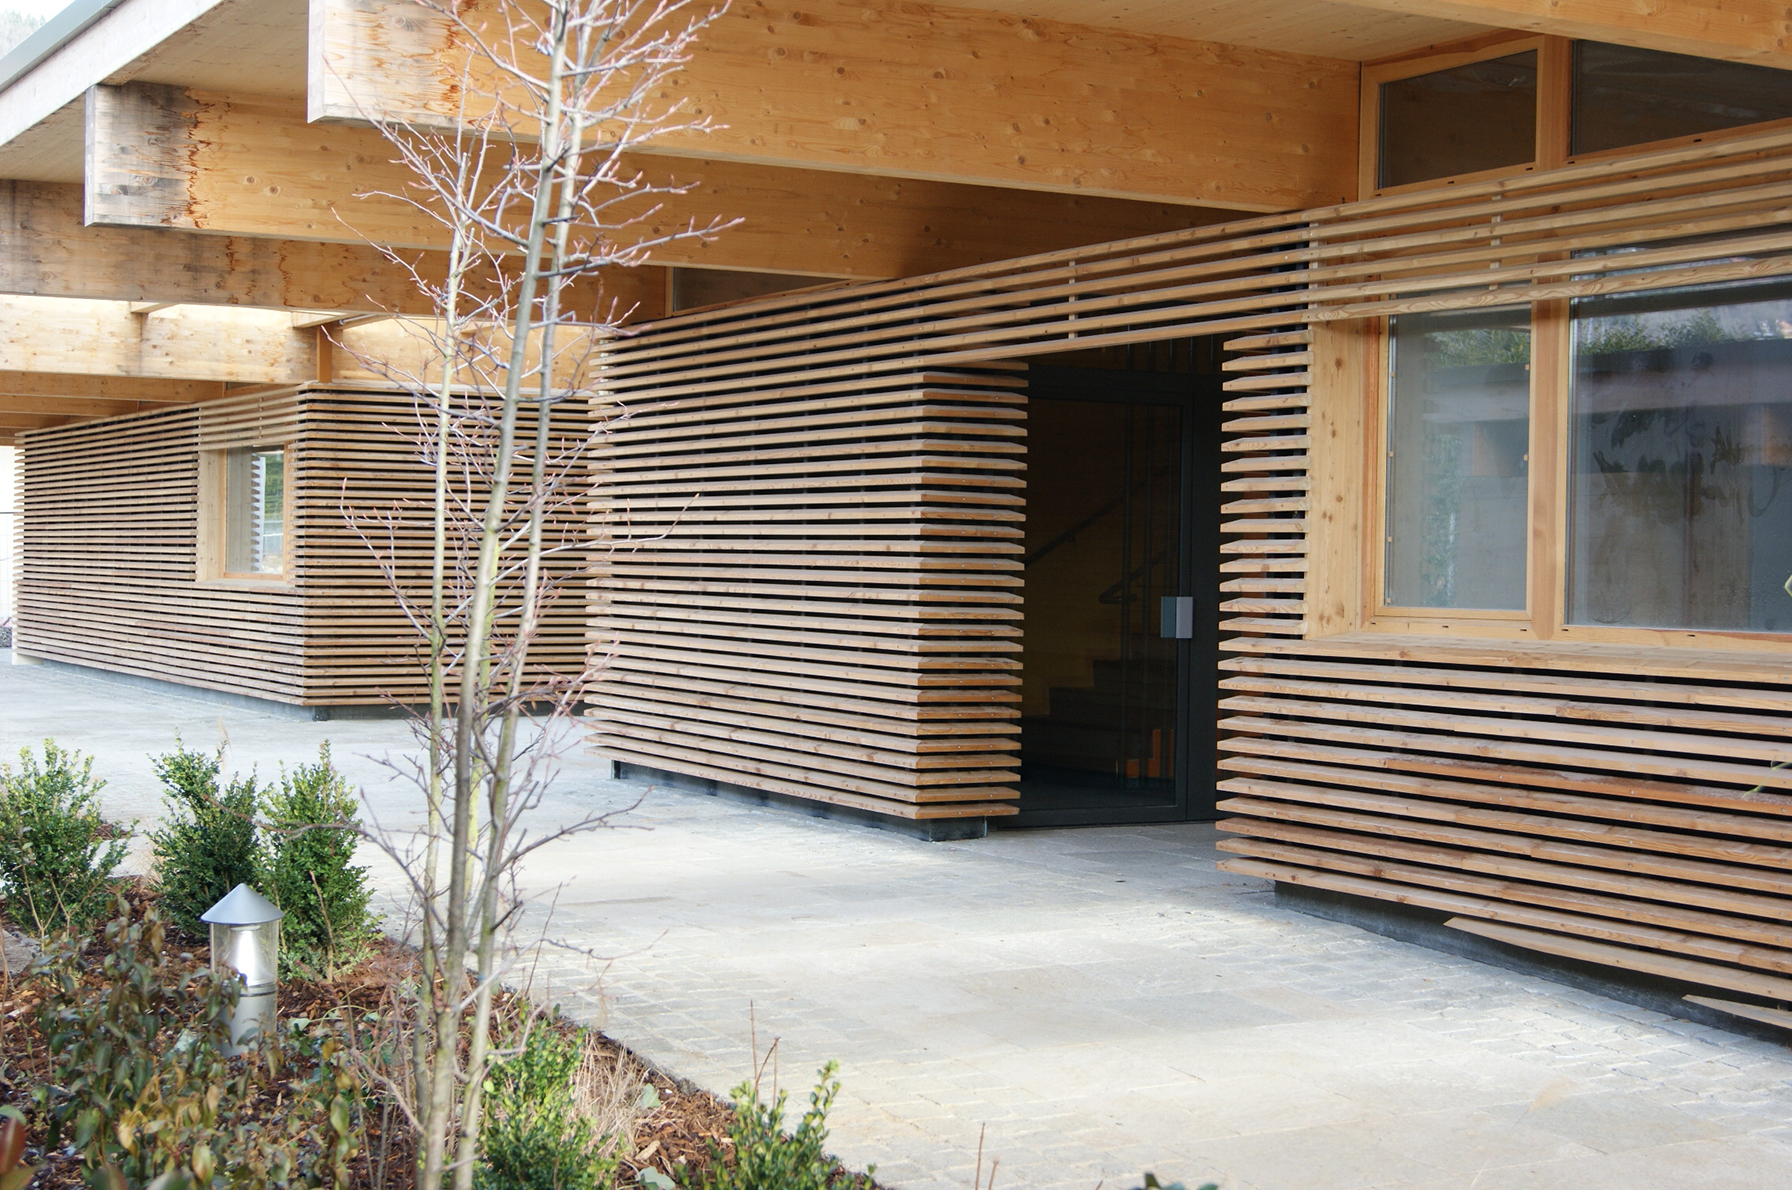 Creche de Fillinges - Architectes - GUYOT Nelly - RAIMONDO Antoine